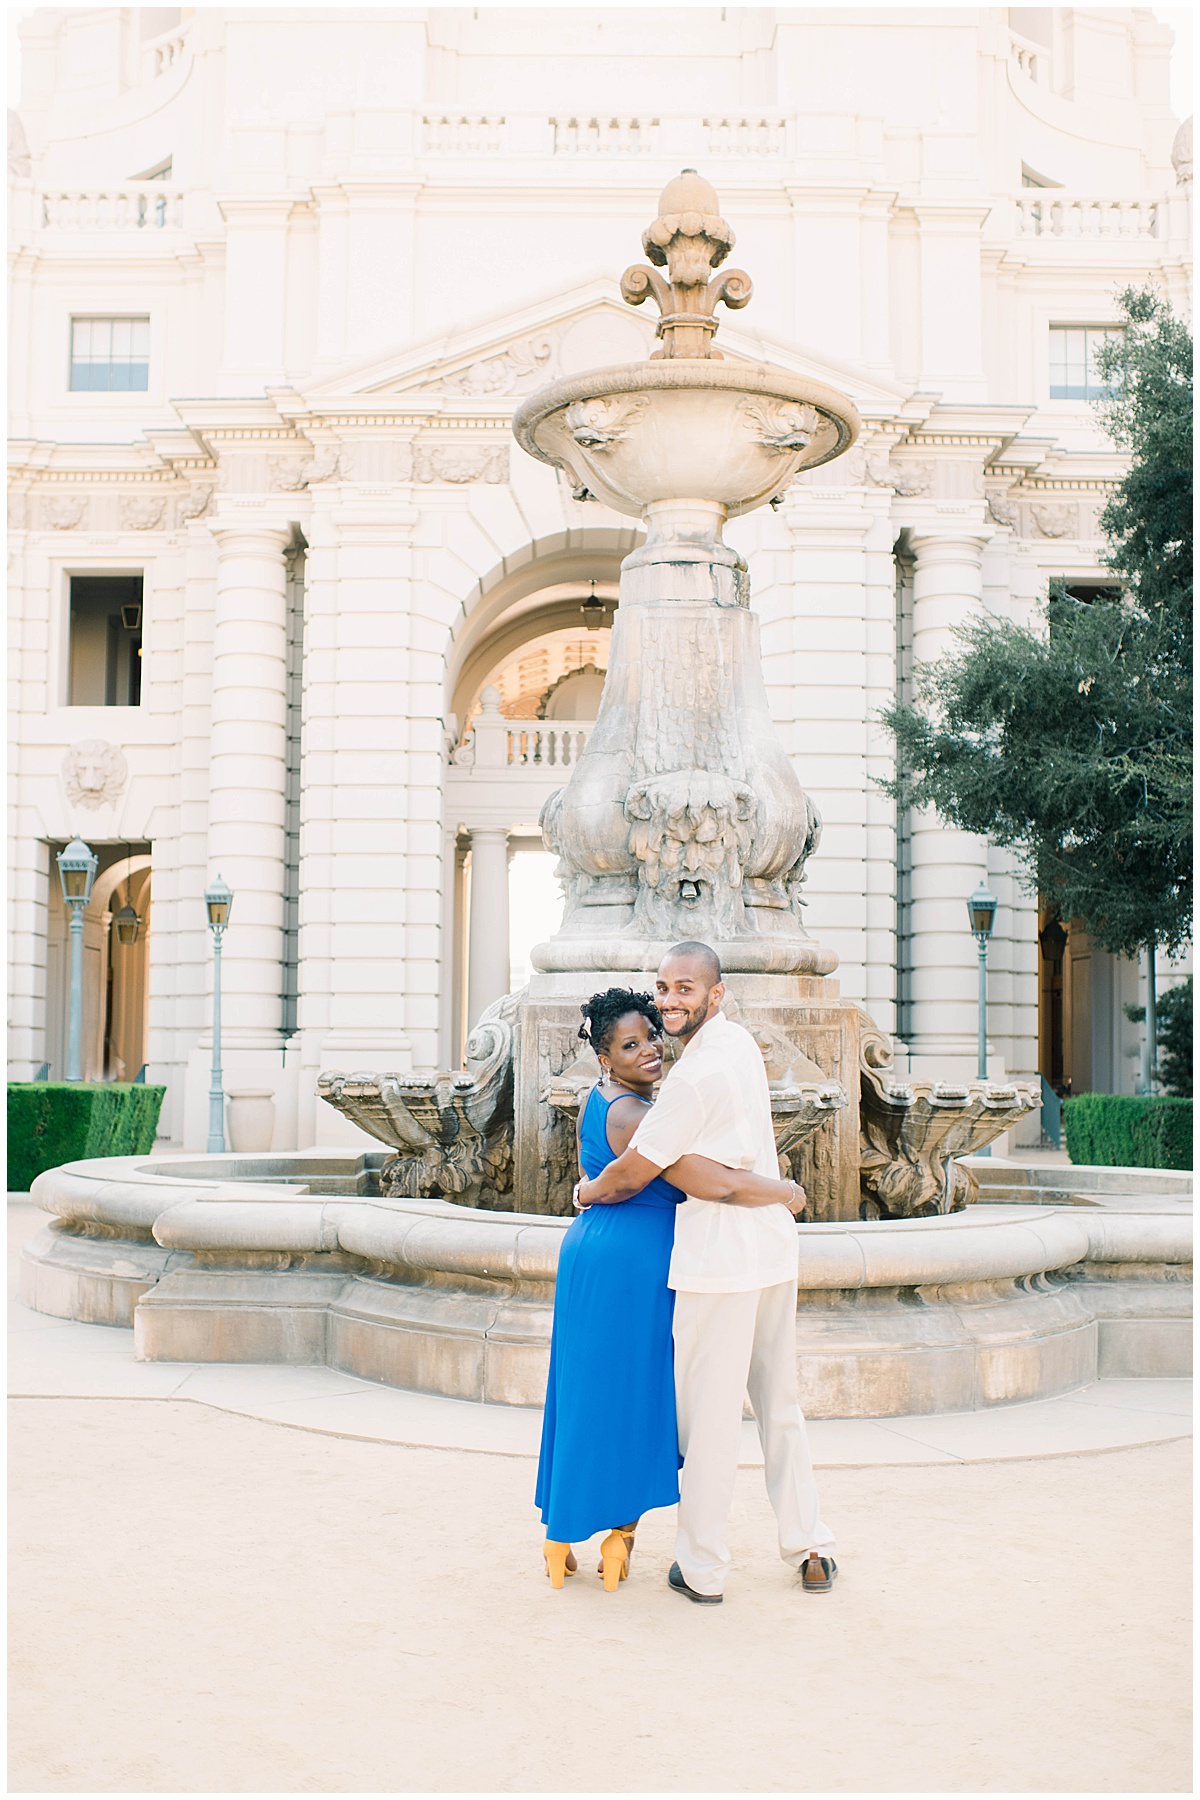 Pasadena-City-Hall-Engagement-Carissa-Woo-Photography_0013.jpg